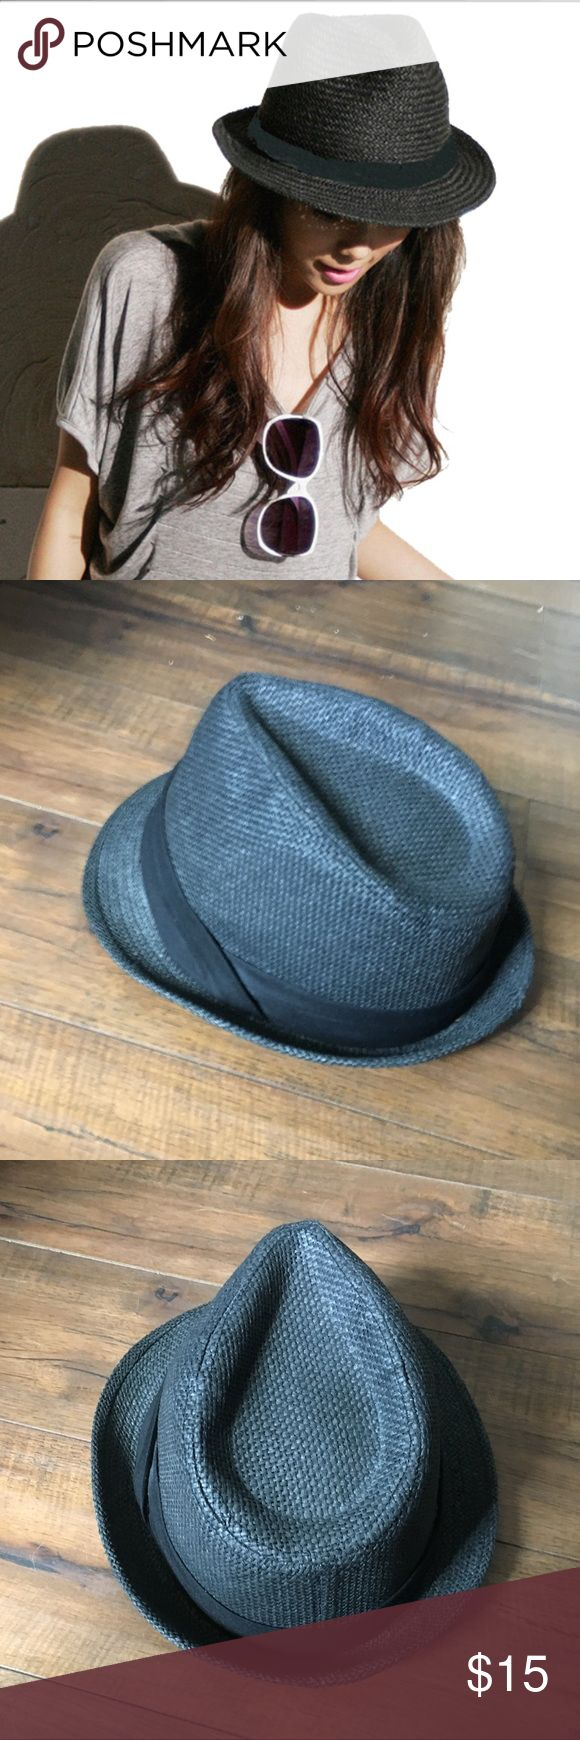 💥Black fedora hat, straw Black fedora hat.  Made from woven paper/ black accent ribbon.  Its technically black but appears dark grey in the sun.  Cute, breathable hat for summer!  Material is stiff but flexible (if that makes sense!) no visible wear- good condition!  Can be for Men or Women.                                      💥 To Post Office same/ next day 💥                                       🔥 Smoke-free home 🔥 Accessories Hats